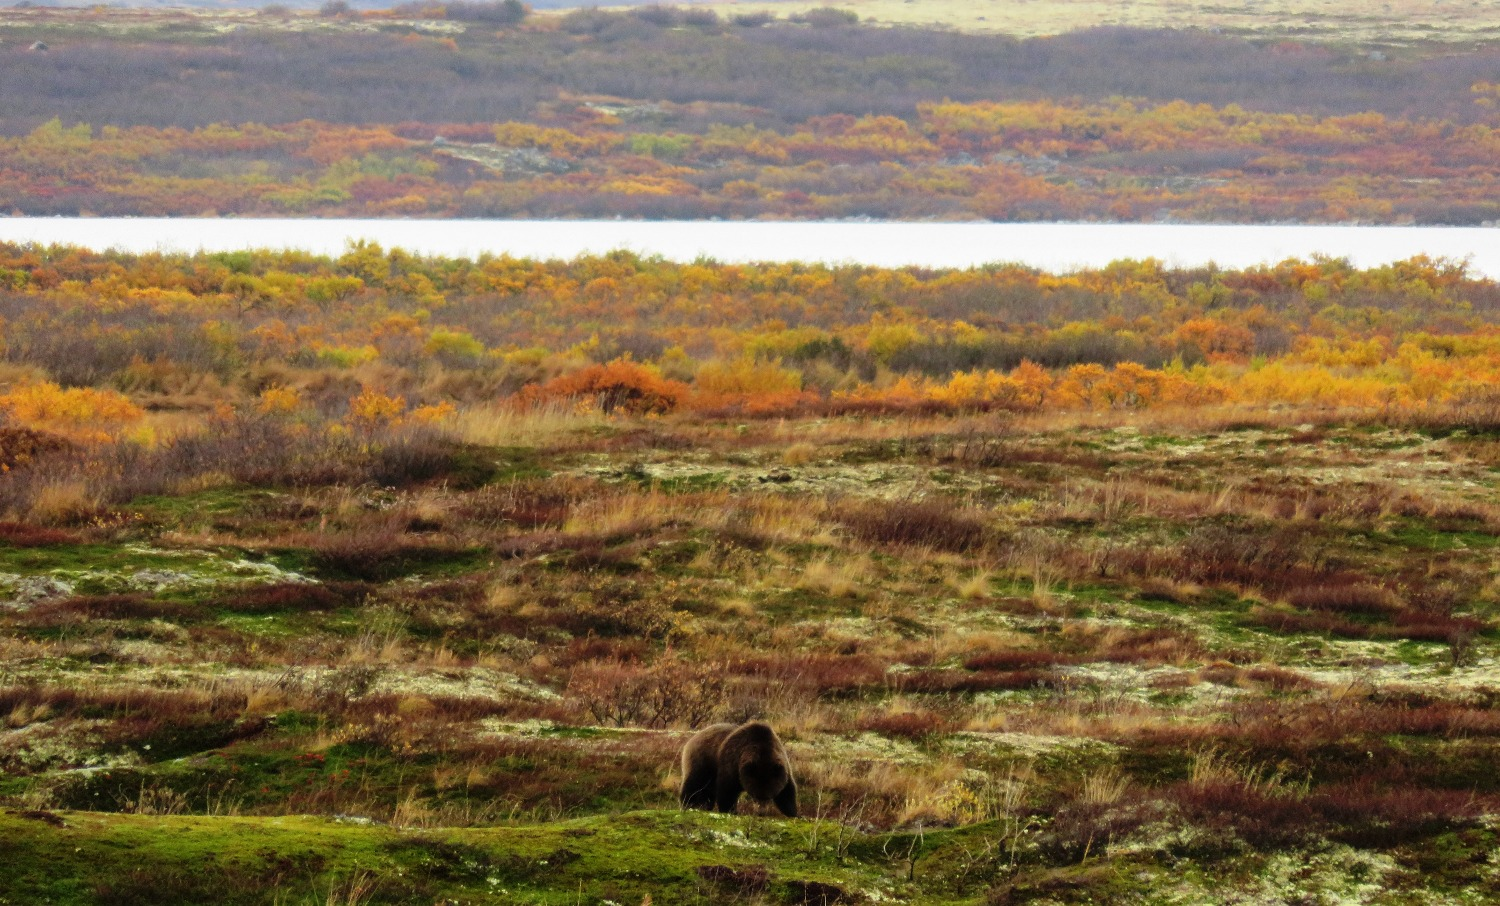 Brown Bear in the Katmai